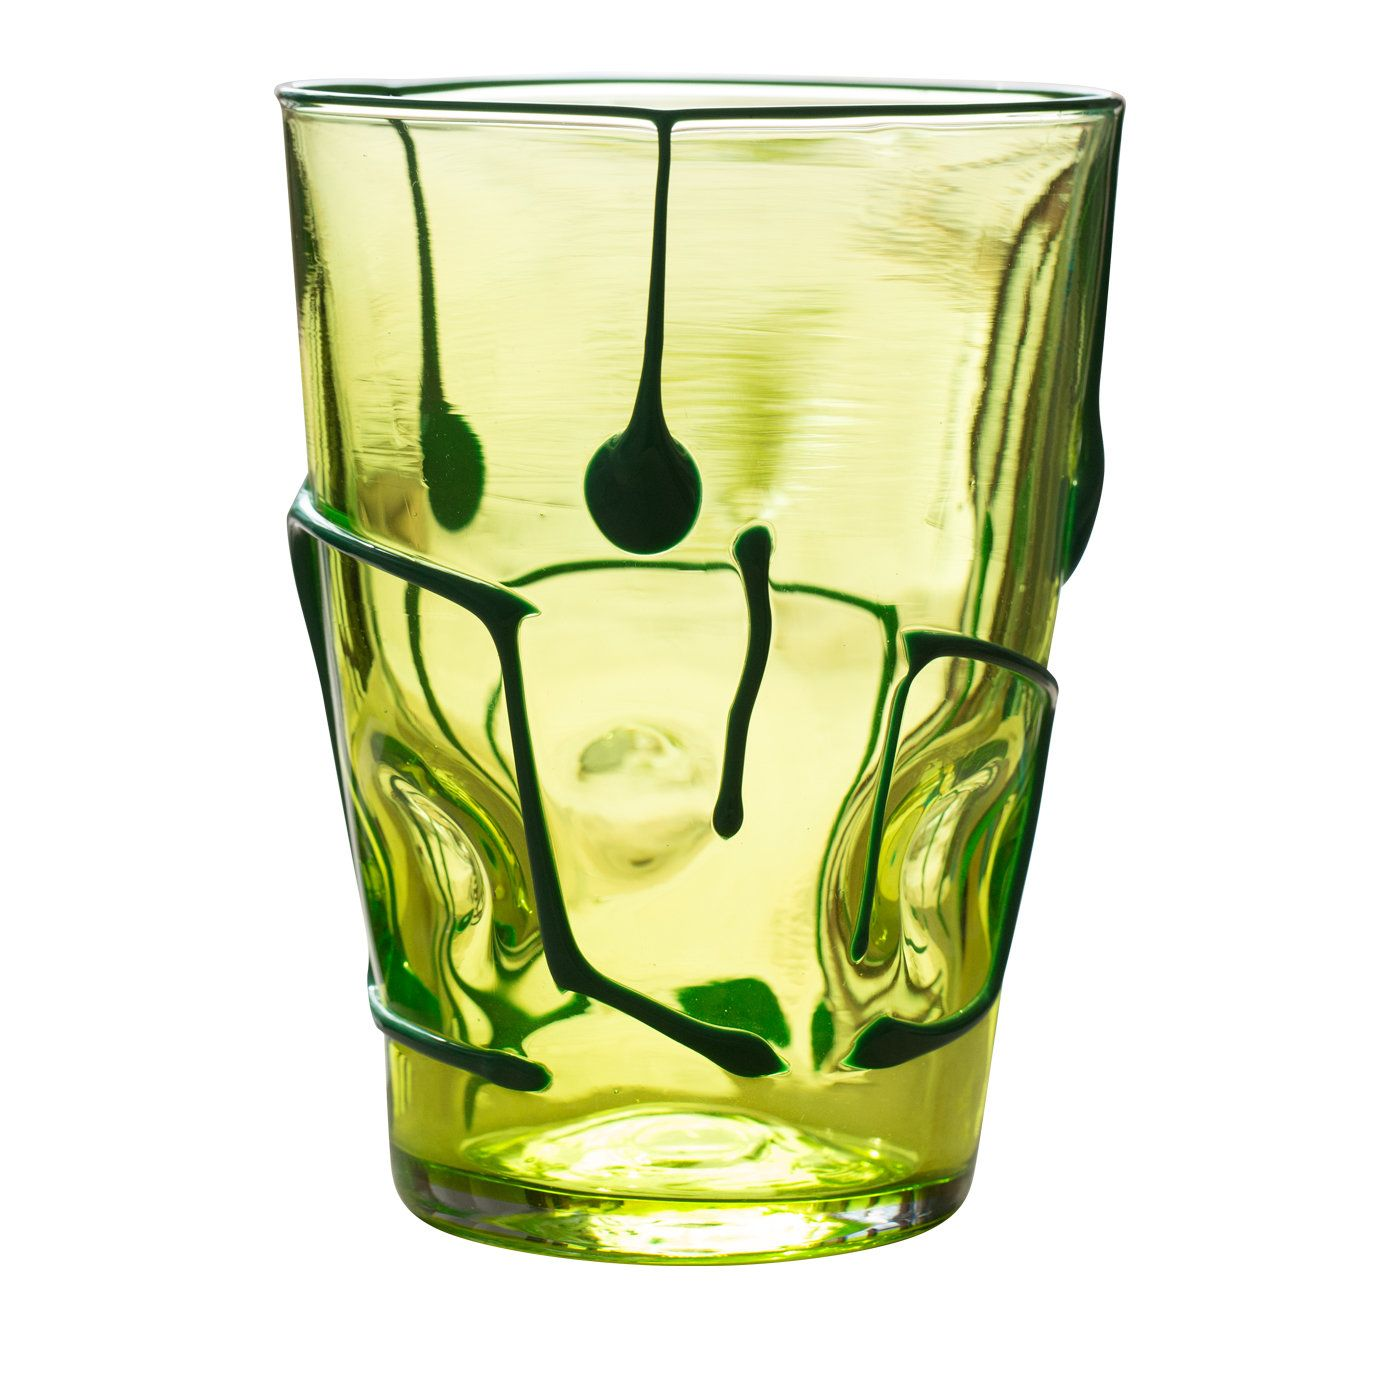 Six exquisite hand-blown Medio Graffio Green Murano glasses from Scuola Abate Zanetti.